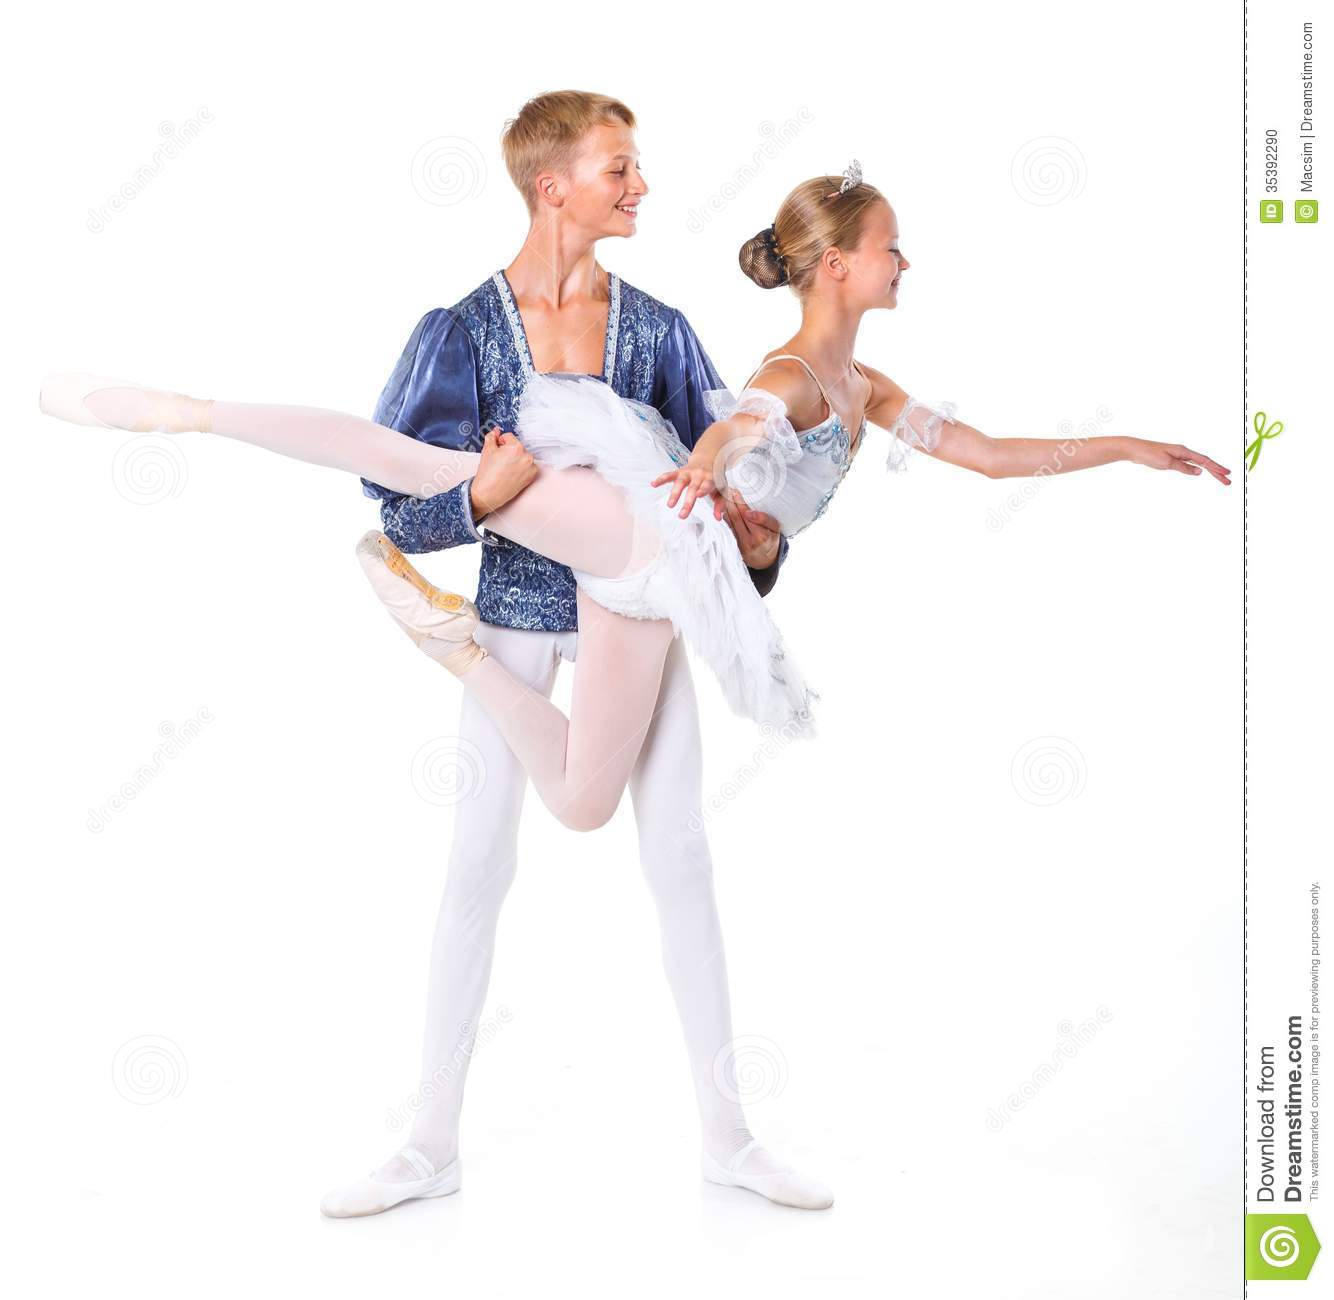 Couple of young ballet dancers posing over isolated white background.